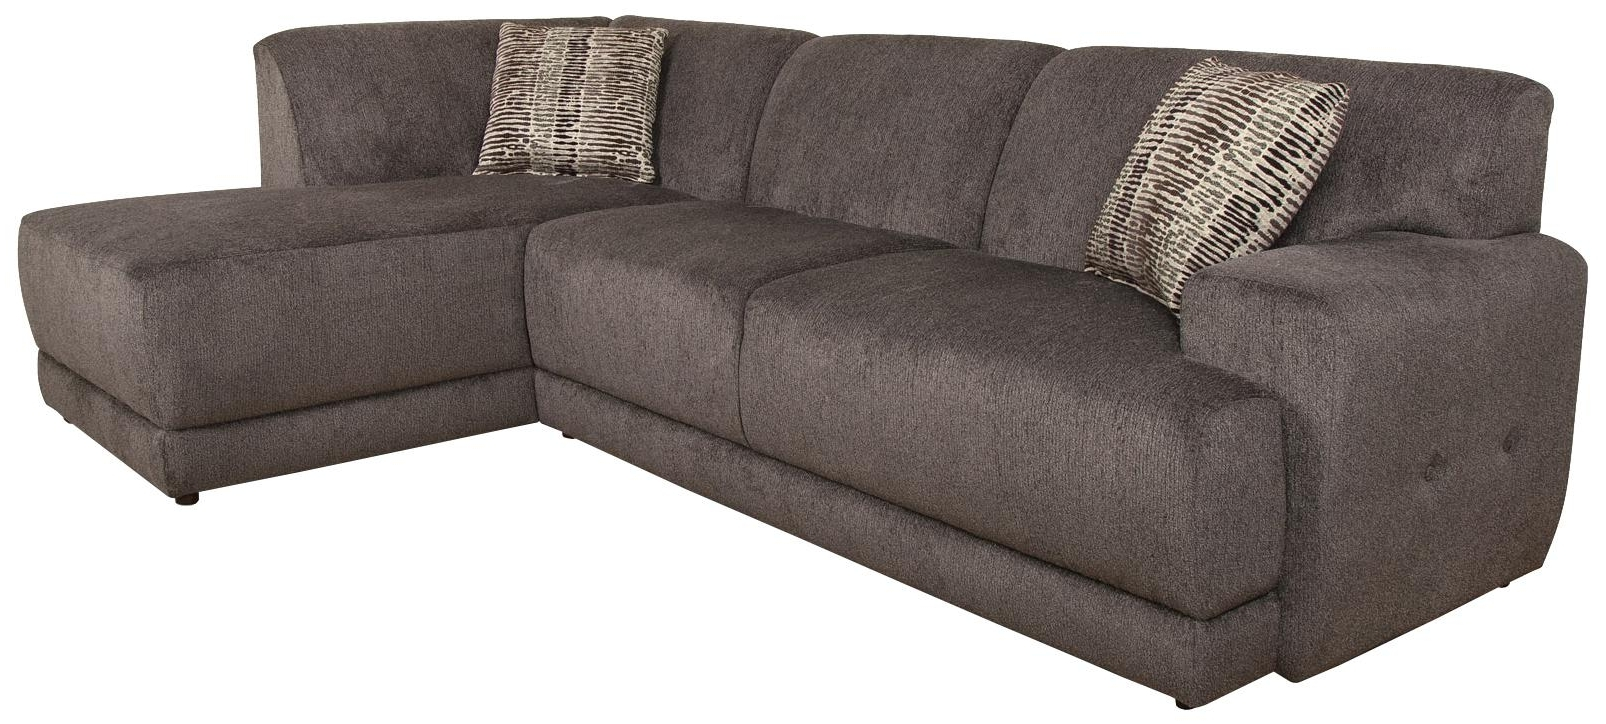 England Sectional Sofas Inside Latest England Cole Contemporary Sectional Sofa With Right Facing Chaise (View 11 of 15)